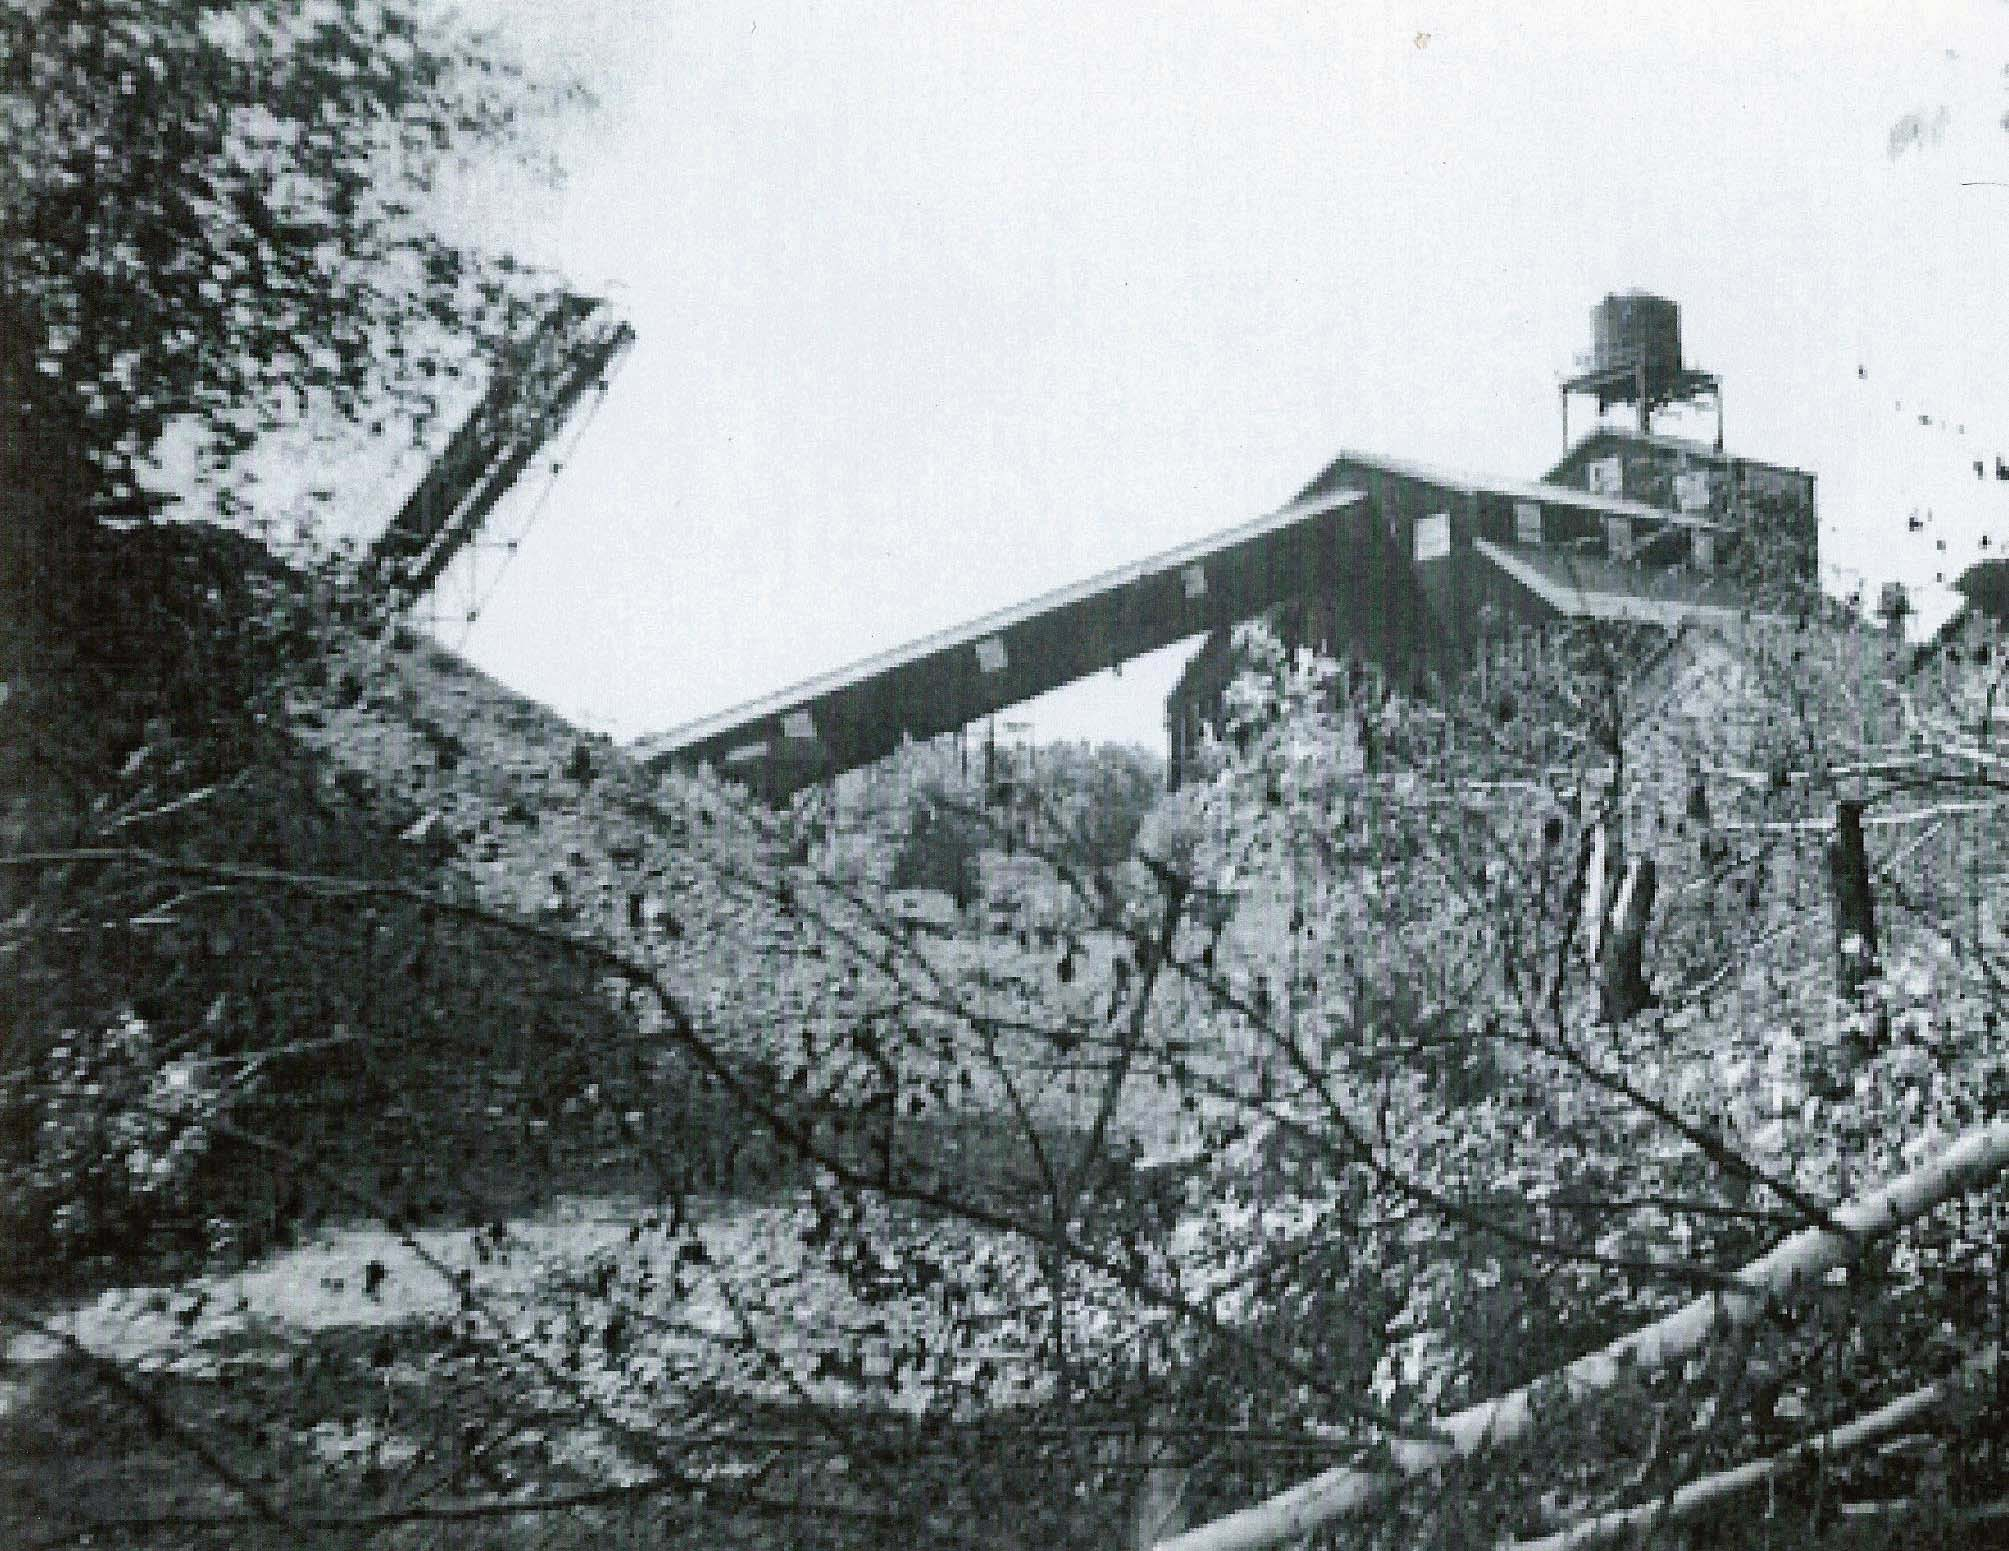 How Curious! A Coal Mine in Cranston - Online Review of